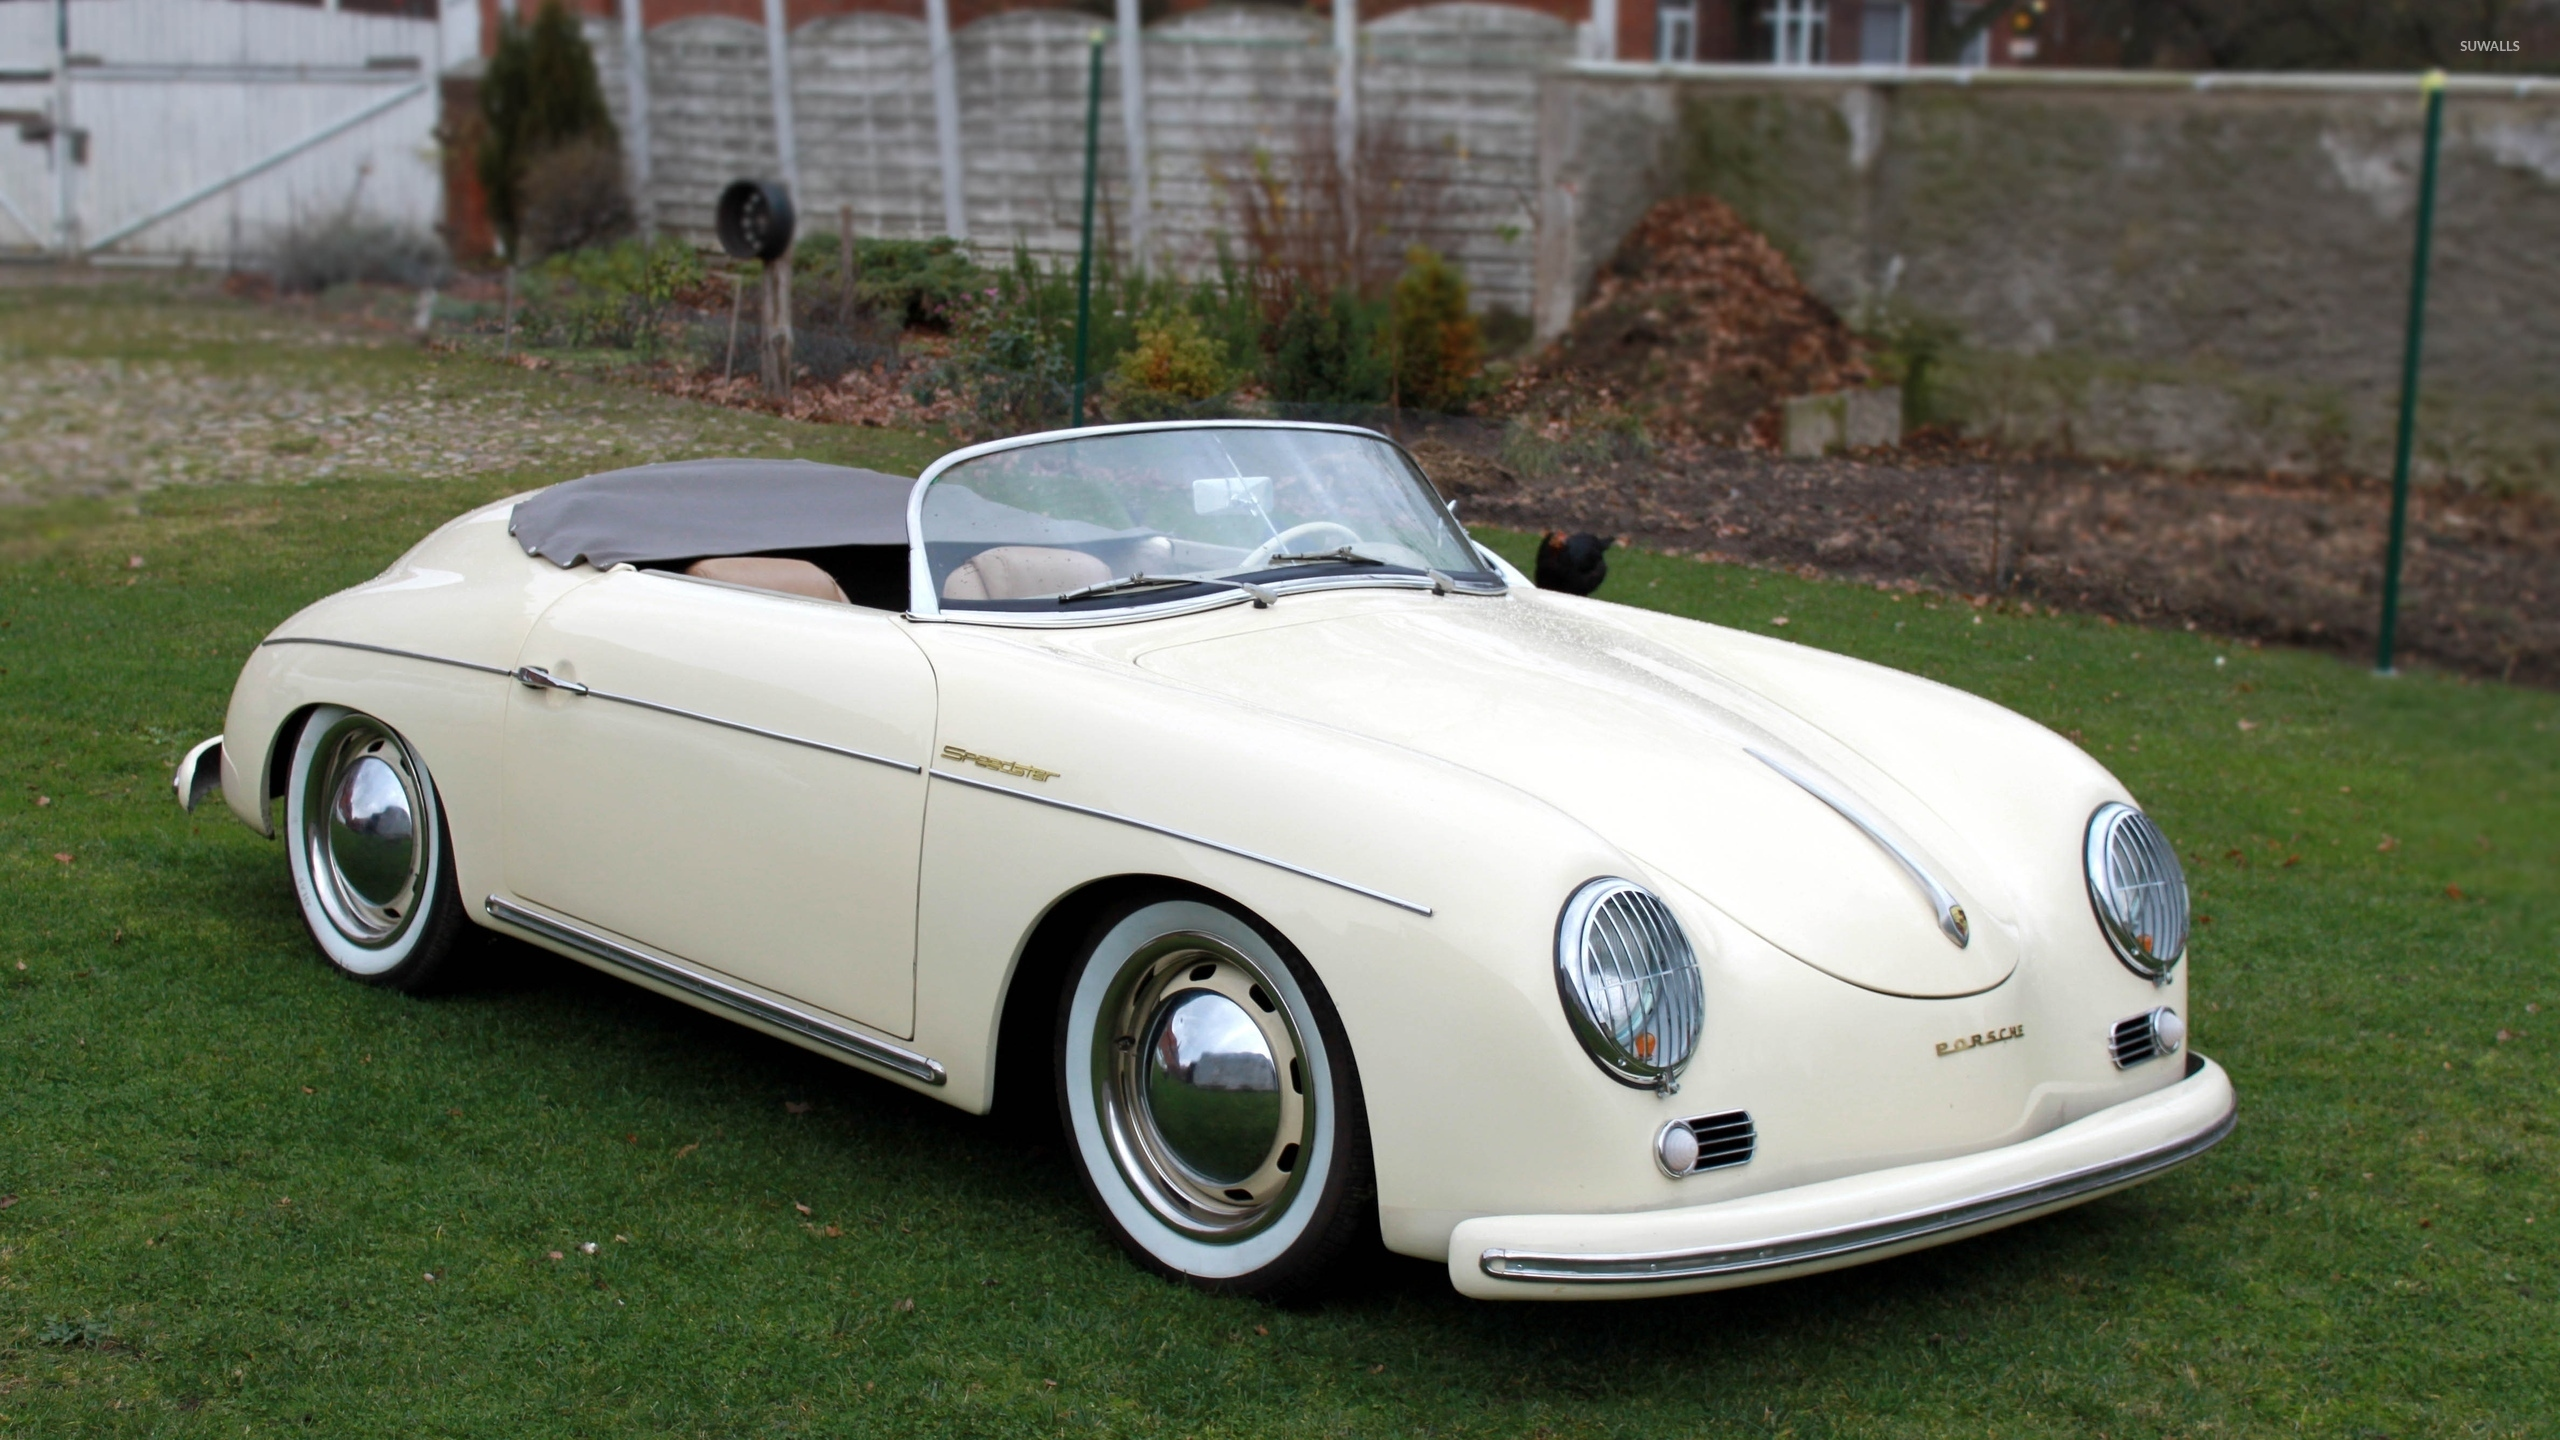 White Porsche 356 Speedster Front Side View Wallpaper Car Wallpapers 50898